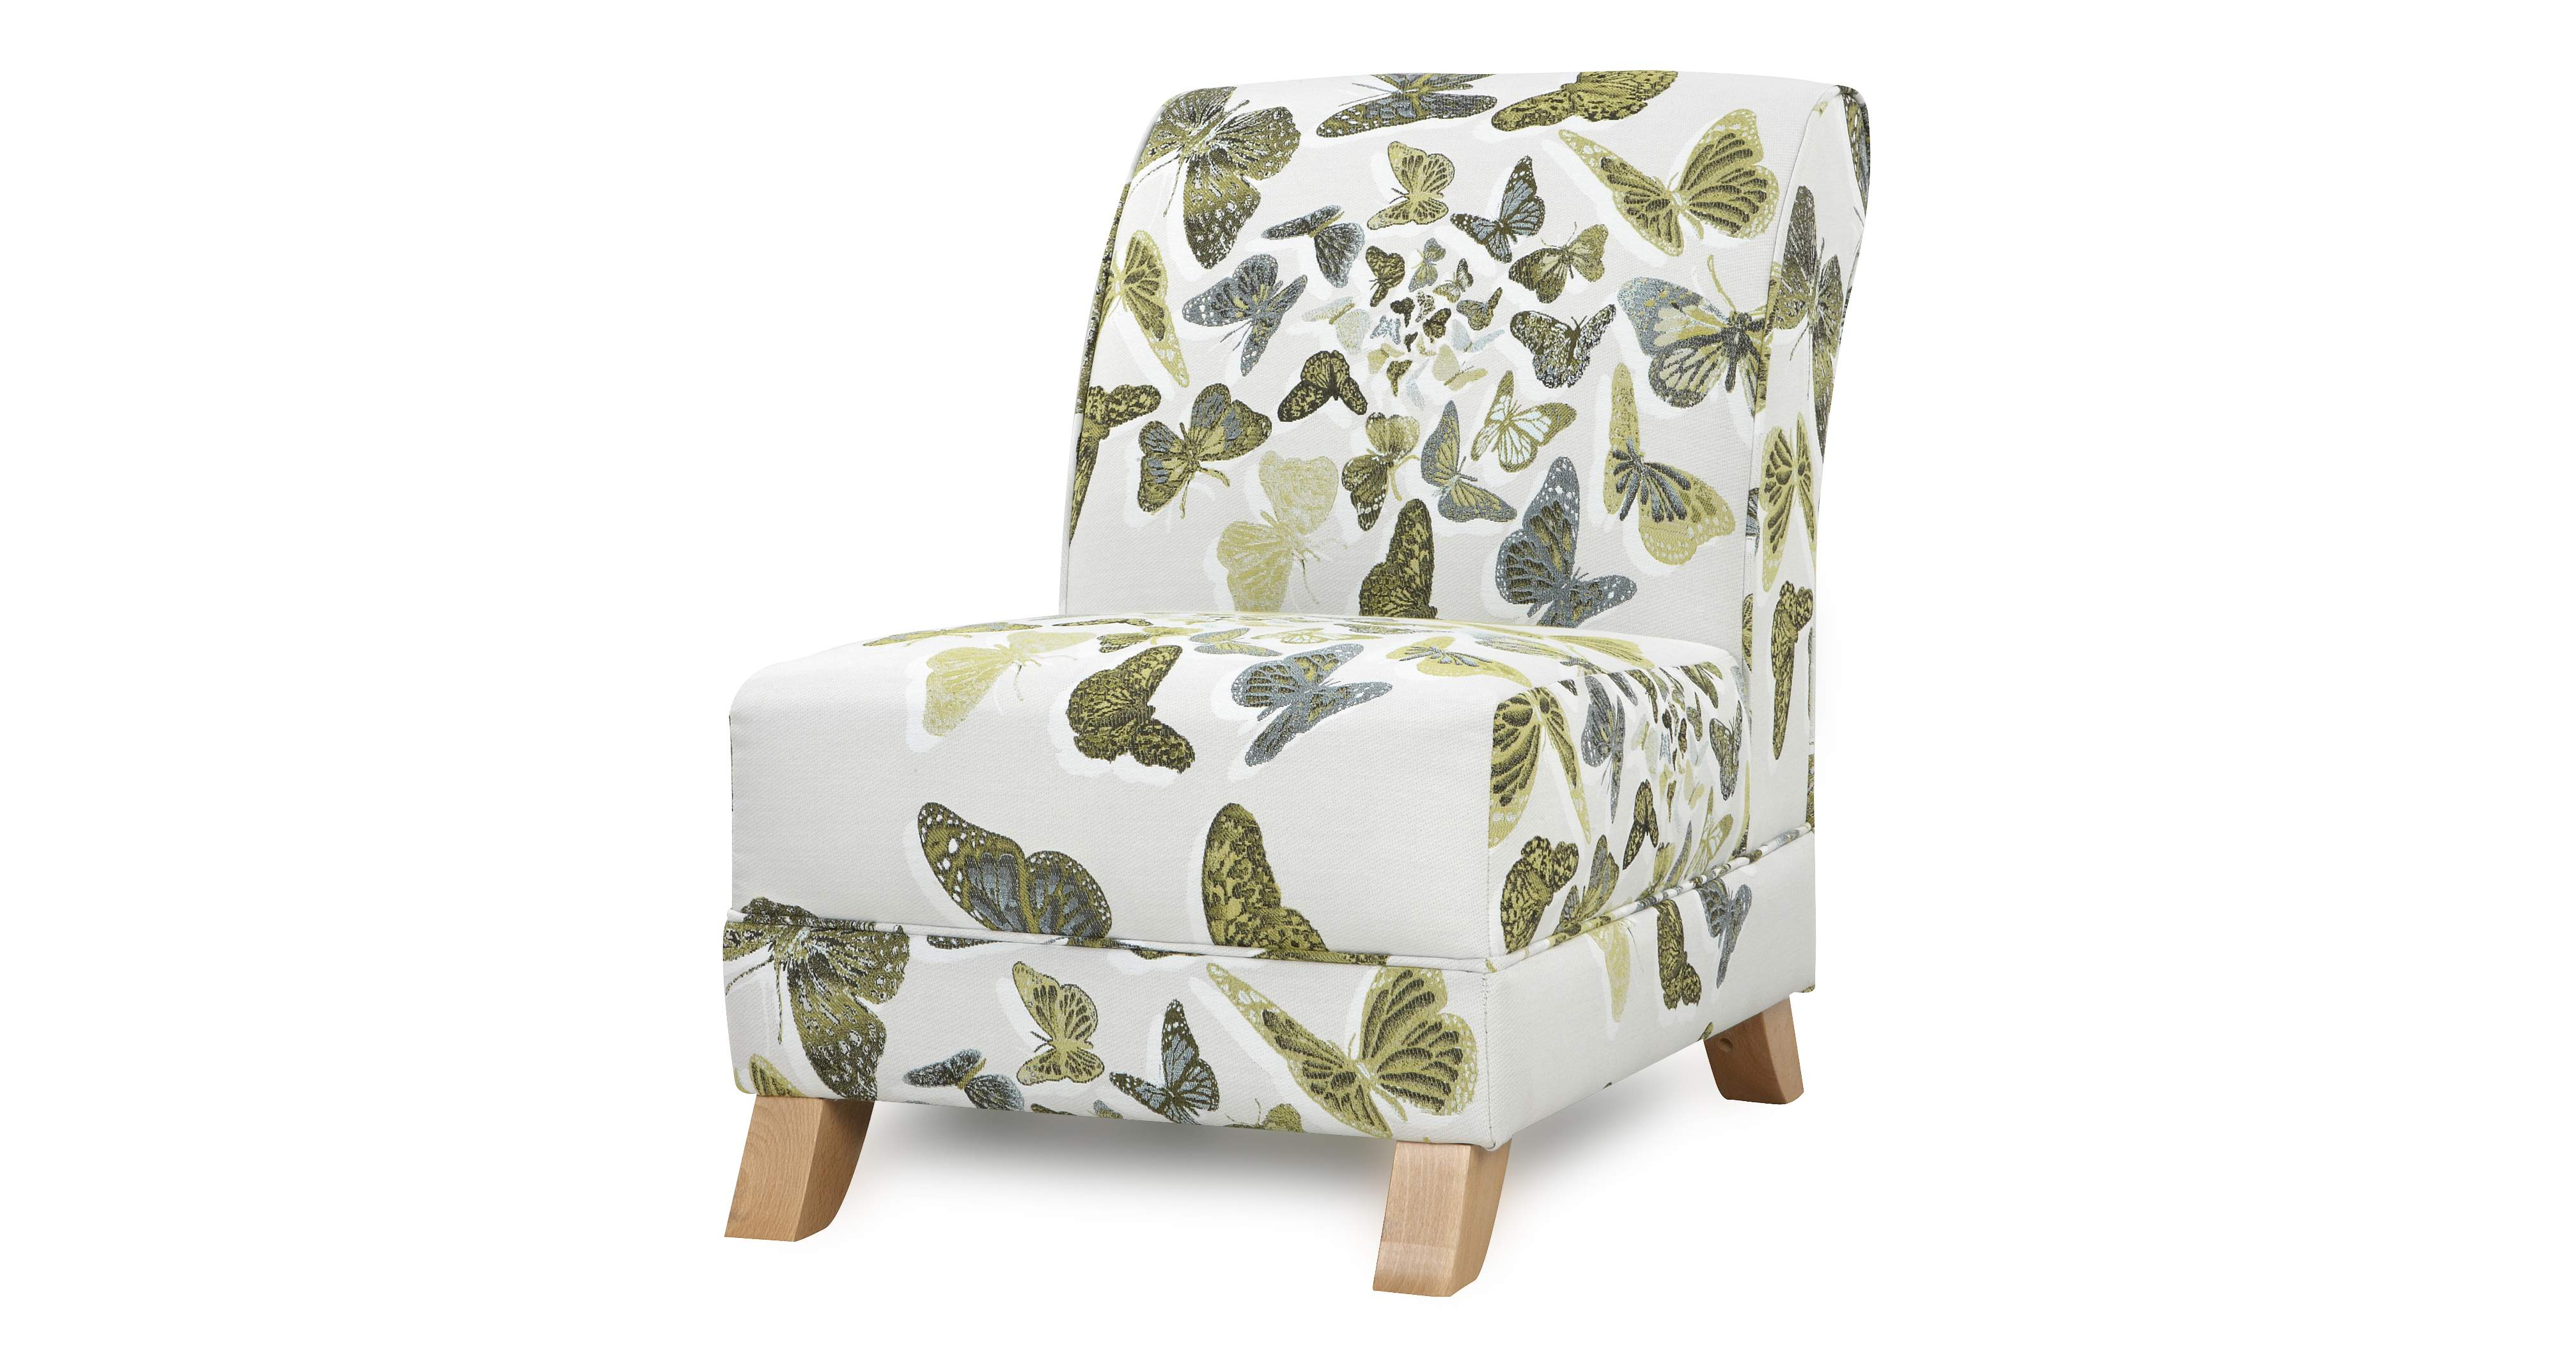 dfs escape set 4 seater lime green lounger sofa accent chair and foot stool ebay. Black Bedroom Furniture Sets. Home Design Ideas